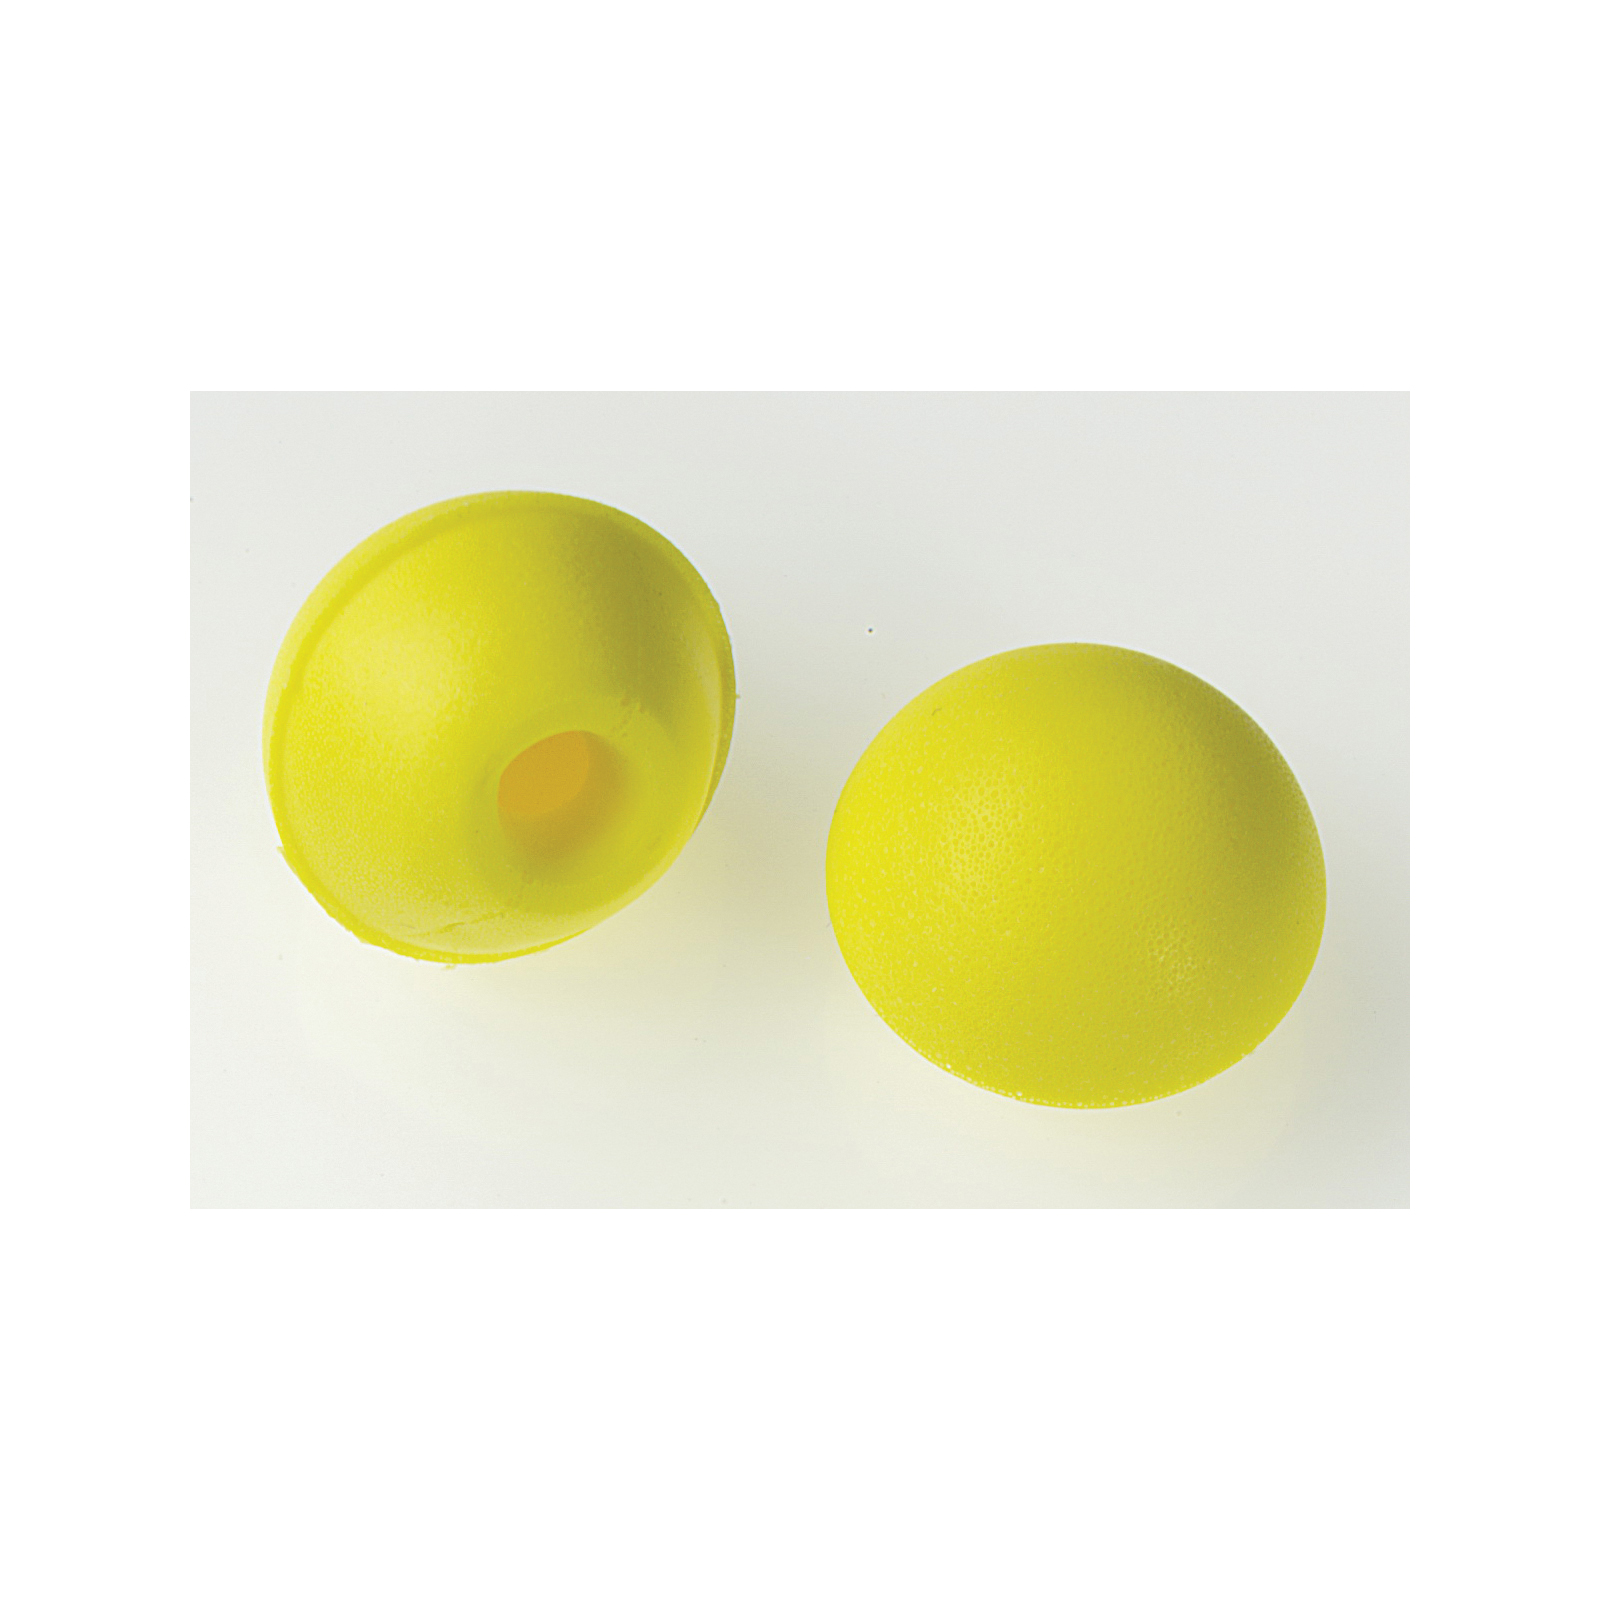 3M™ E-A-R™ 080529-19066 Reusable Replacement Pod, For Use With 3M™ E-A-R Caps™ 200 350-2100 and 321-2101 Hearing Protectors, CSA Class BL